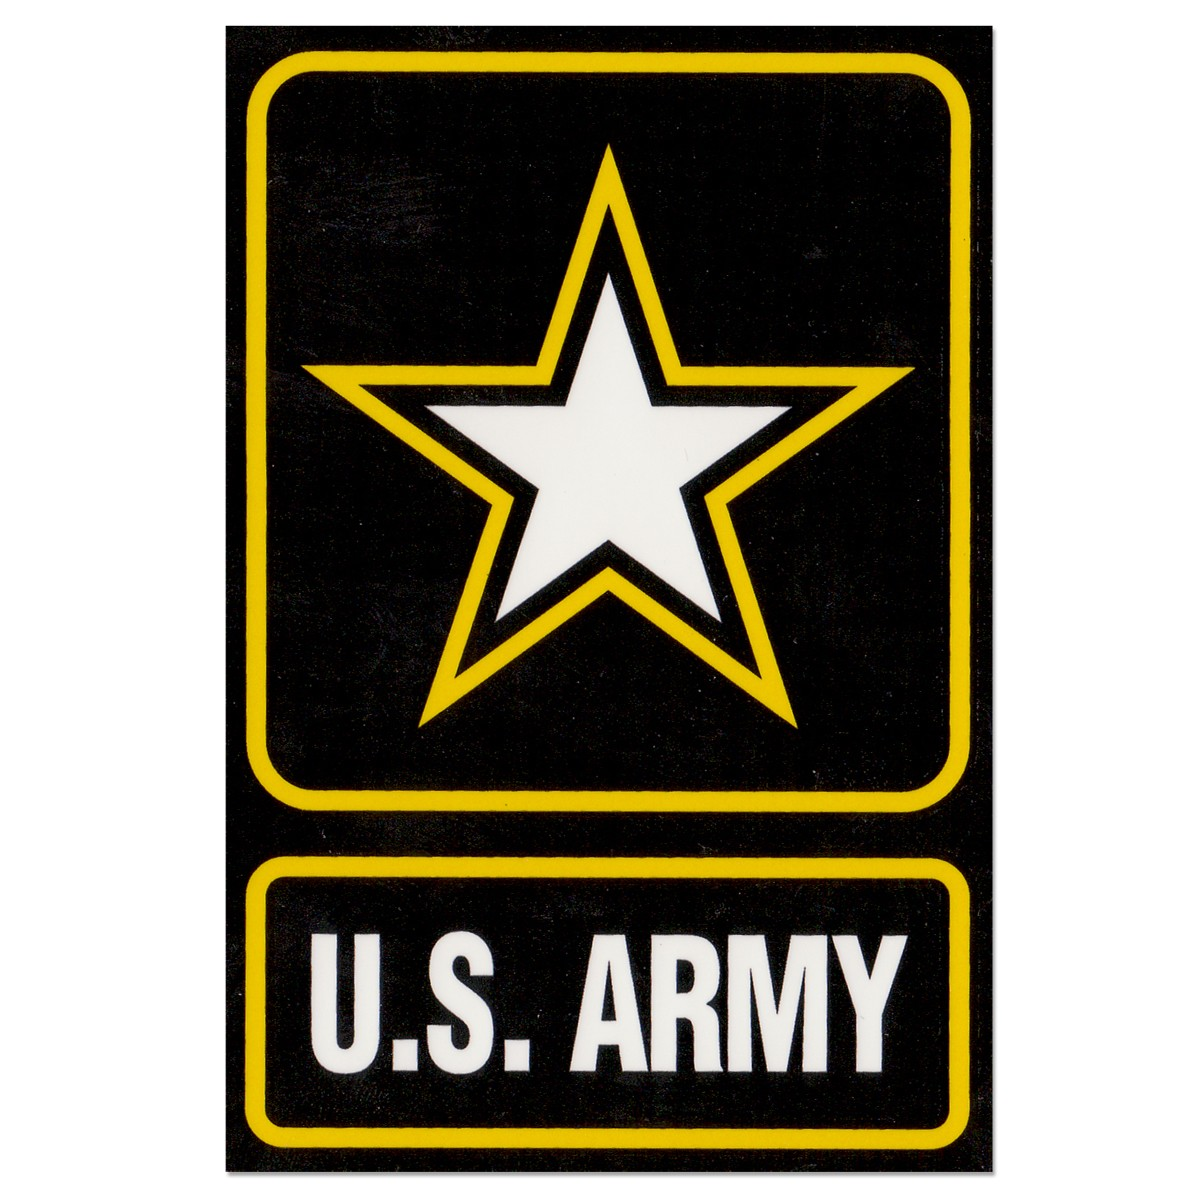 Us Army Logo Hd Wallpaper | One plus Wallpapers